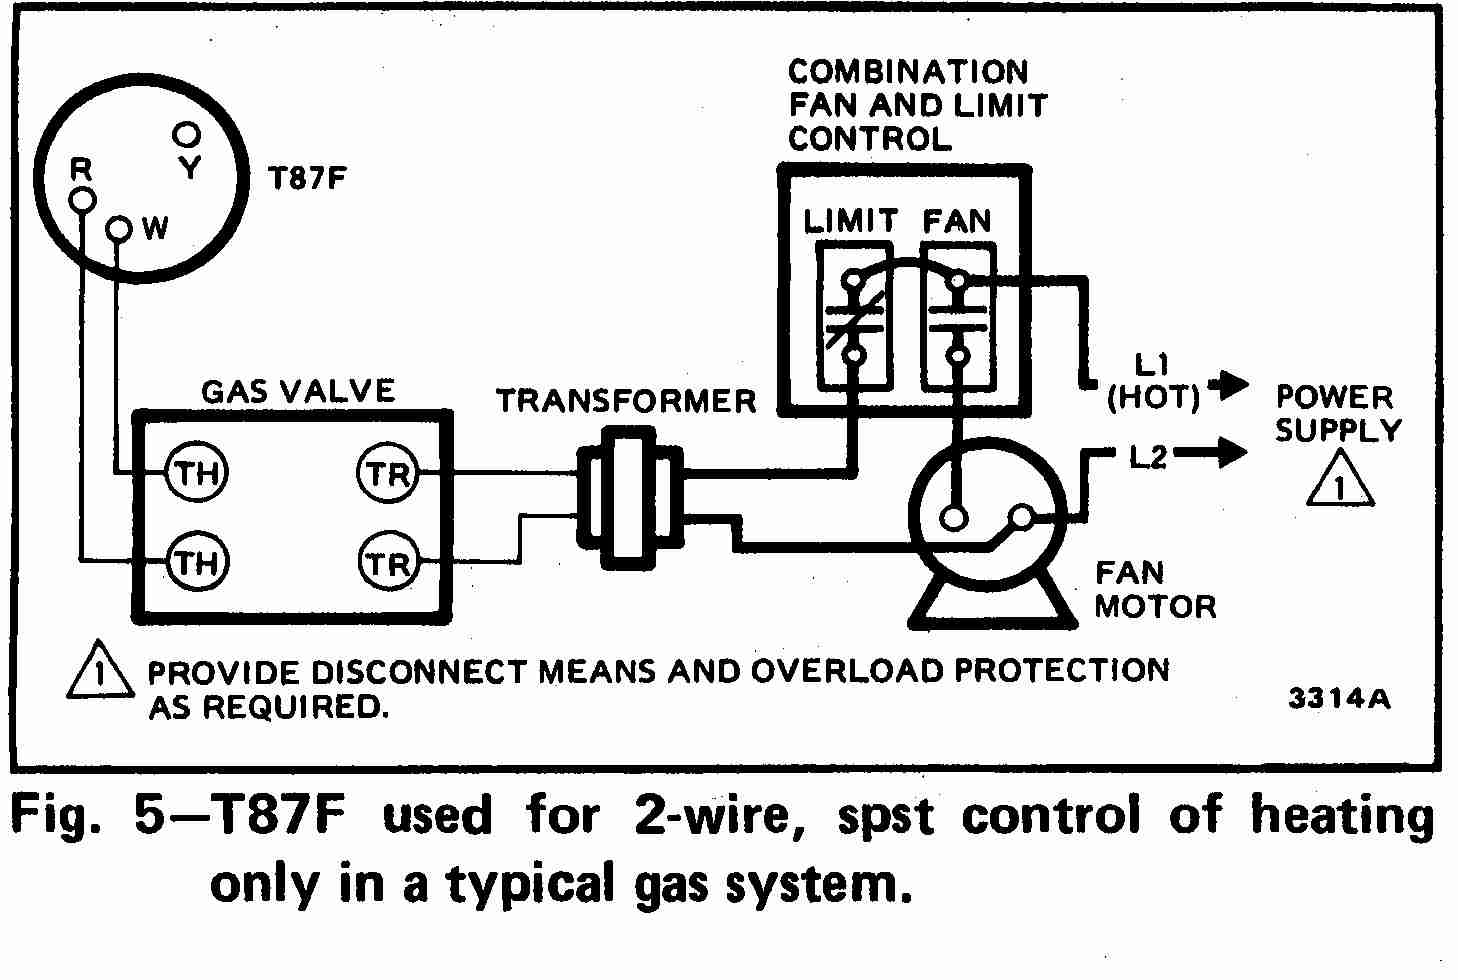 heating thermostat wiring diagram 2 19 kenmo lp de \u2022room thermostat wiring diagrams for hvac systems rh inspectapedia com home heating thermostat wiring diagram home